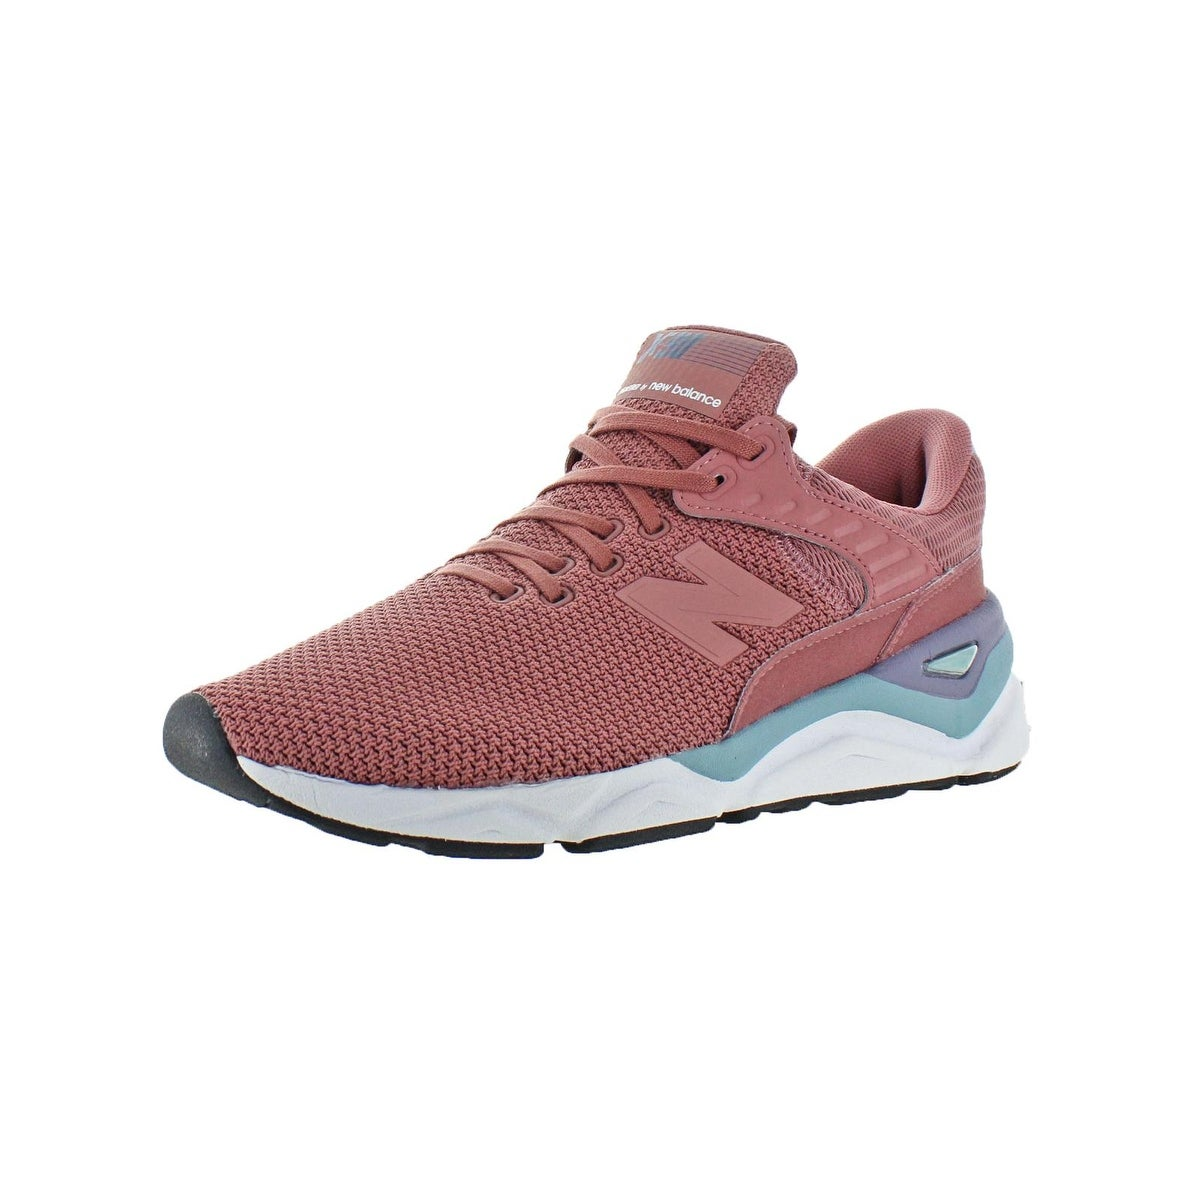 Pink New Balance Women's Shoes | Find Great Shoes Deals